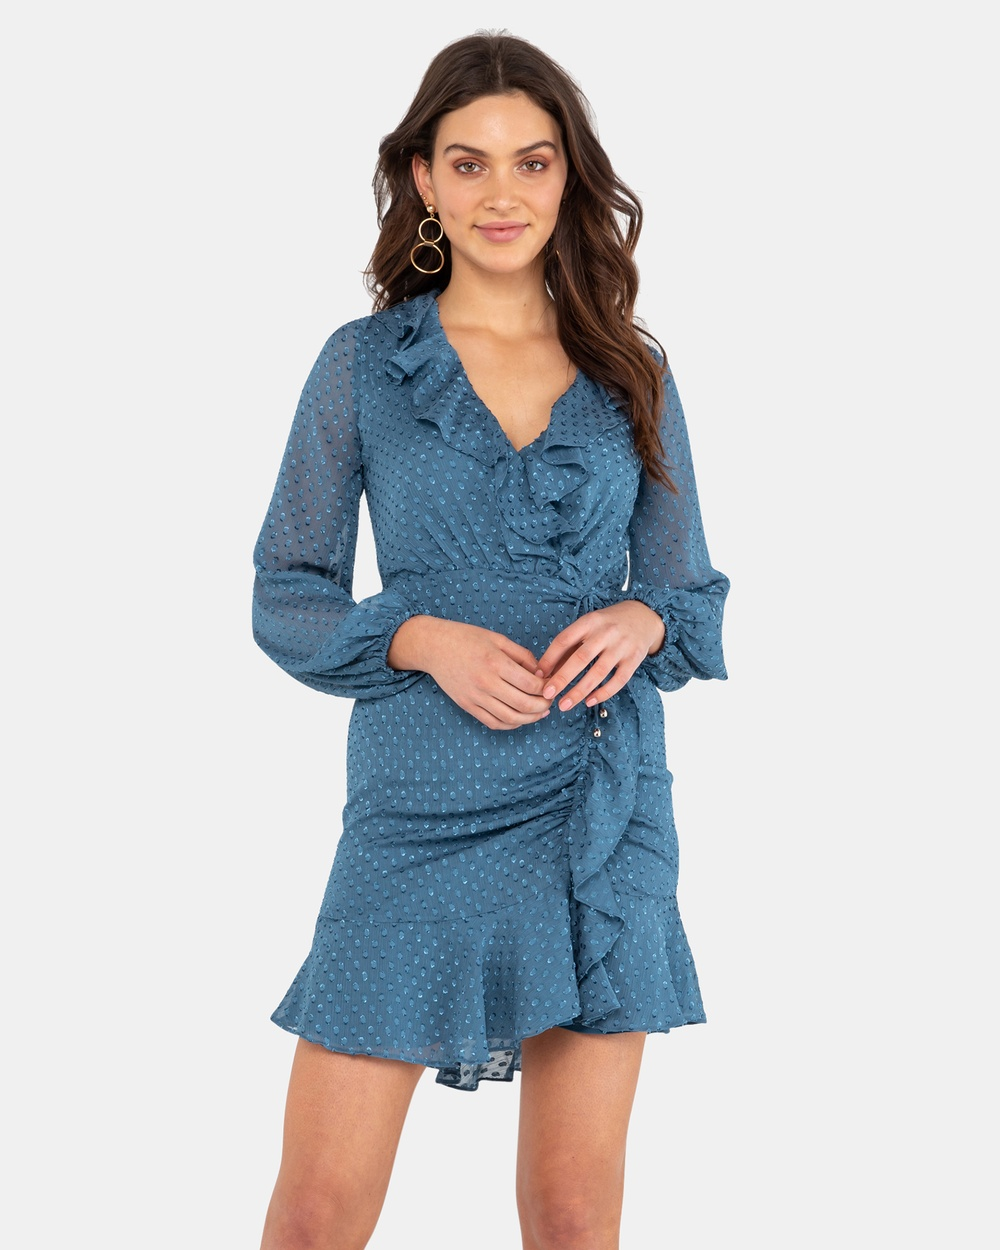 Rodeo Show Aurelia Mini Dress Dresses Steel Aurelia Mini Dress